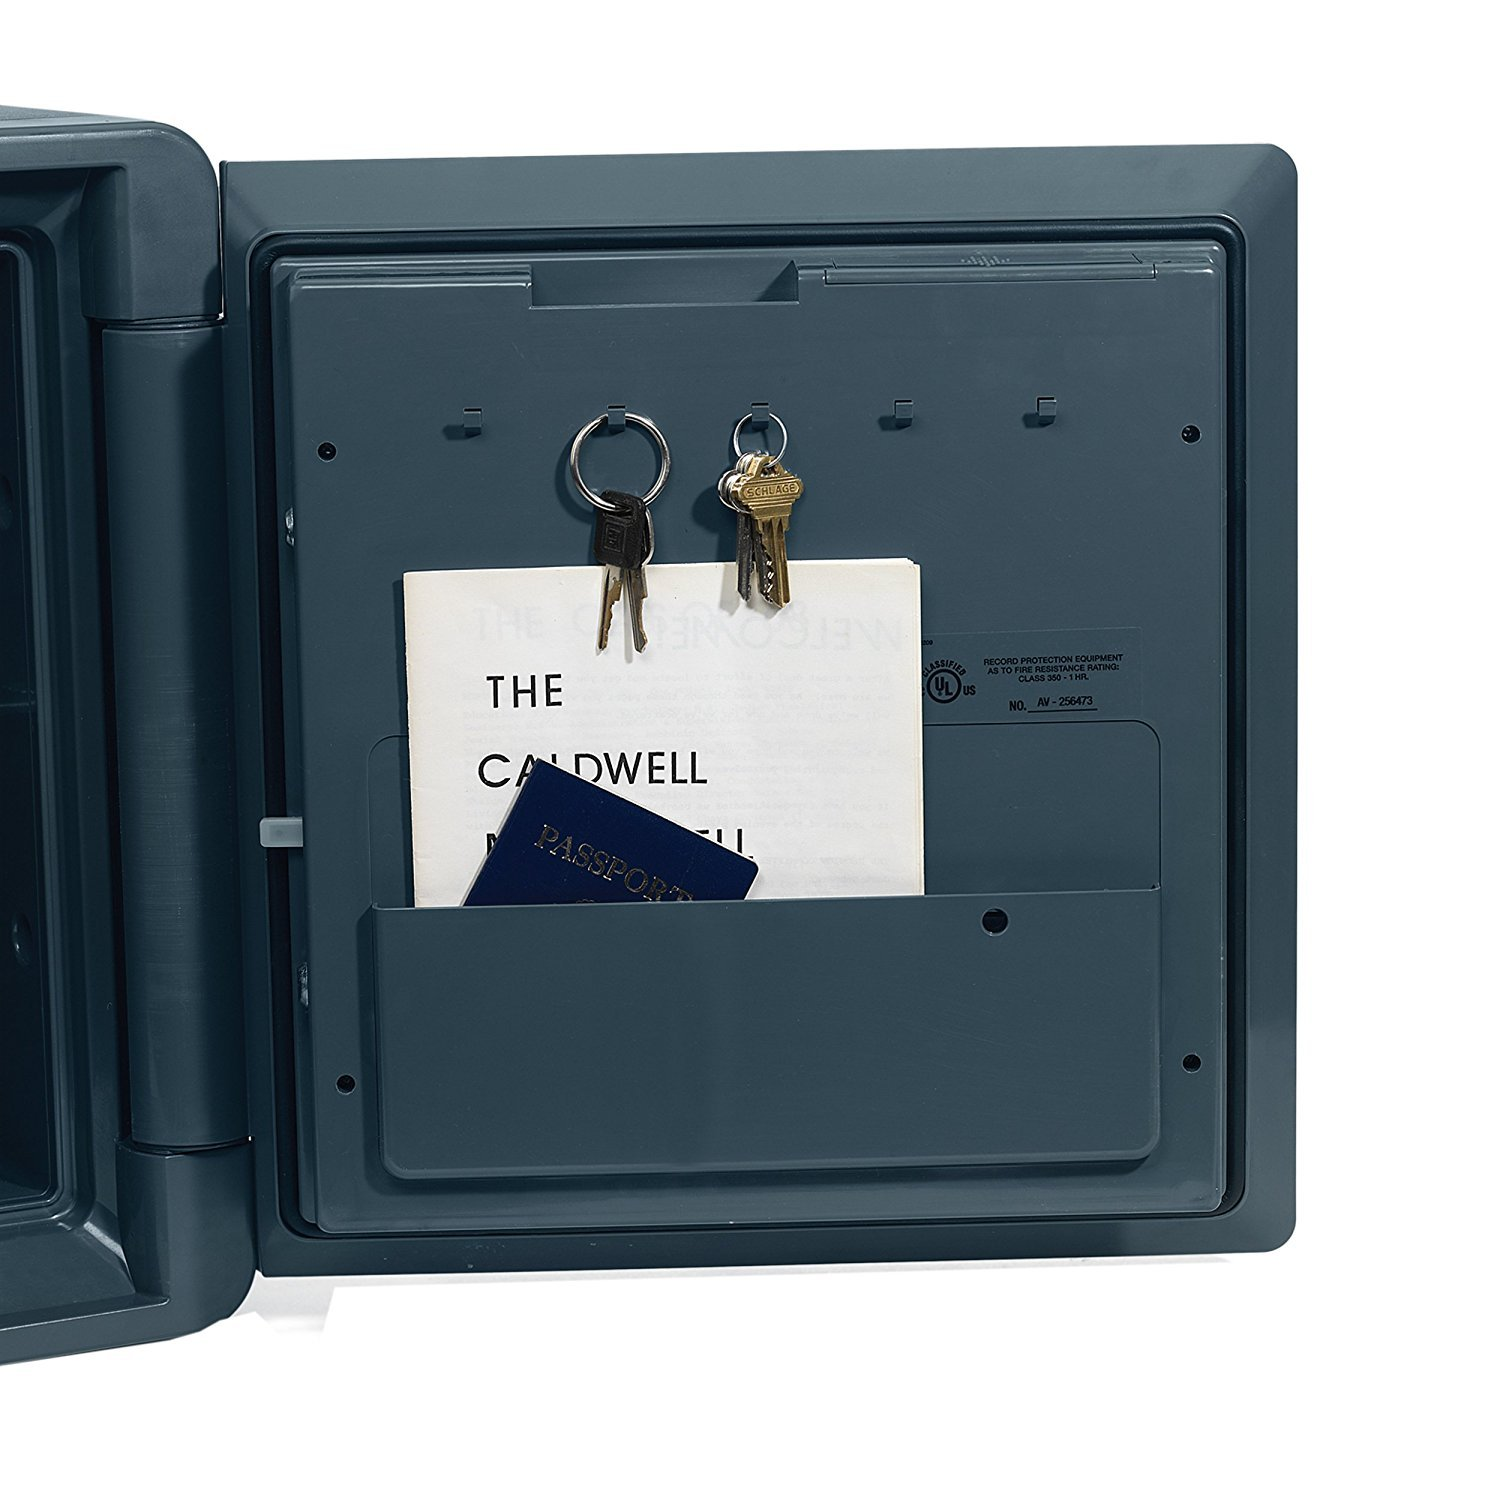 First Alert 2092DF Waterproof and Fire-Resistant Digital Safe, 1.31 Cubic Feet by First Alert (Image #4)